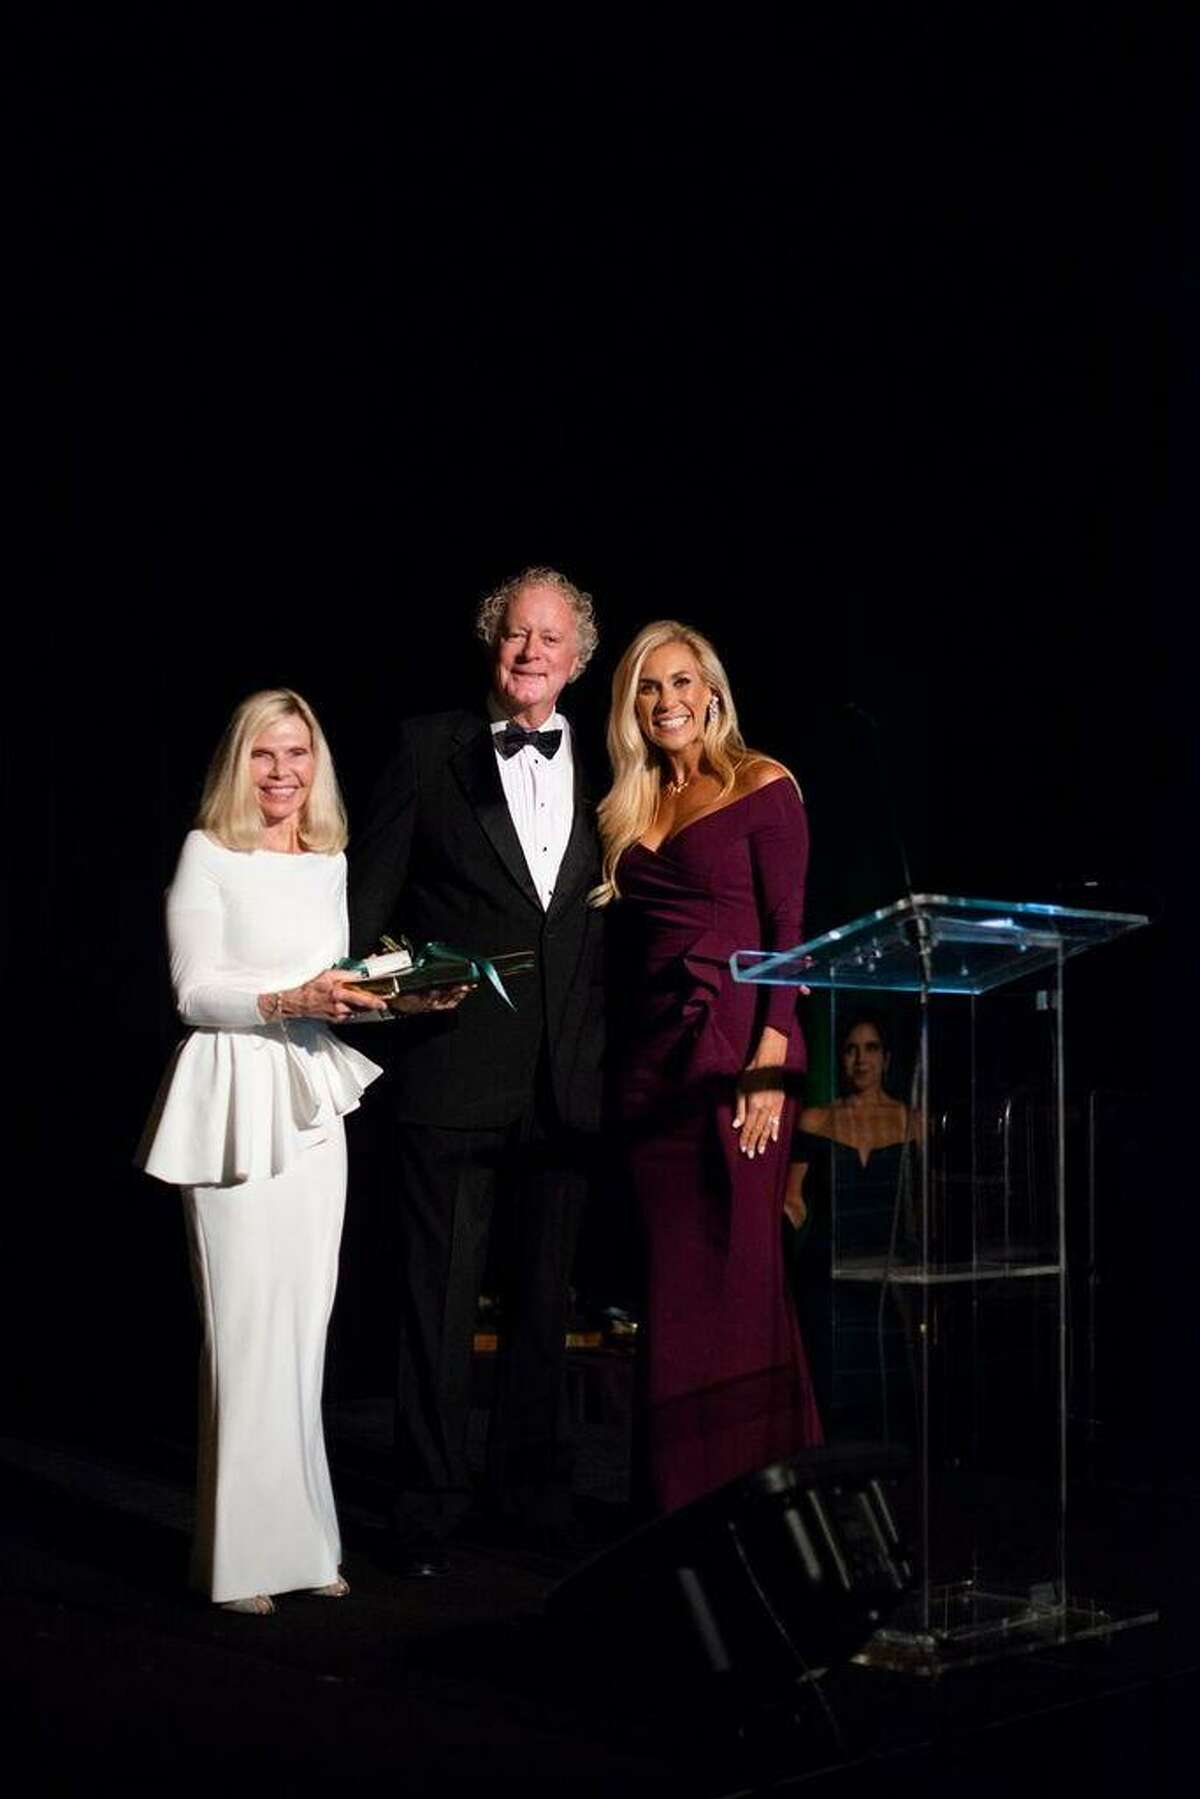 Honorary co-chairs, Ann and Jerry Snyder, with Interfaith of The Woodlands CEO Missy Herndon.